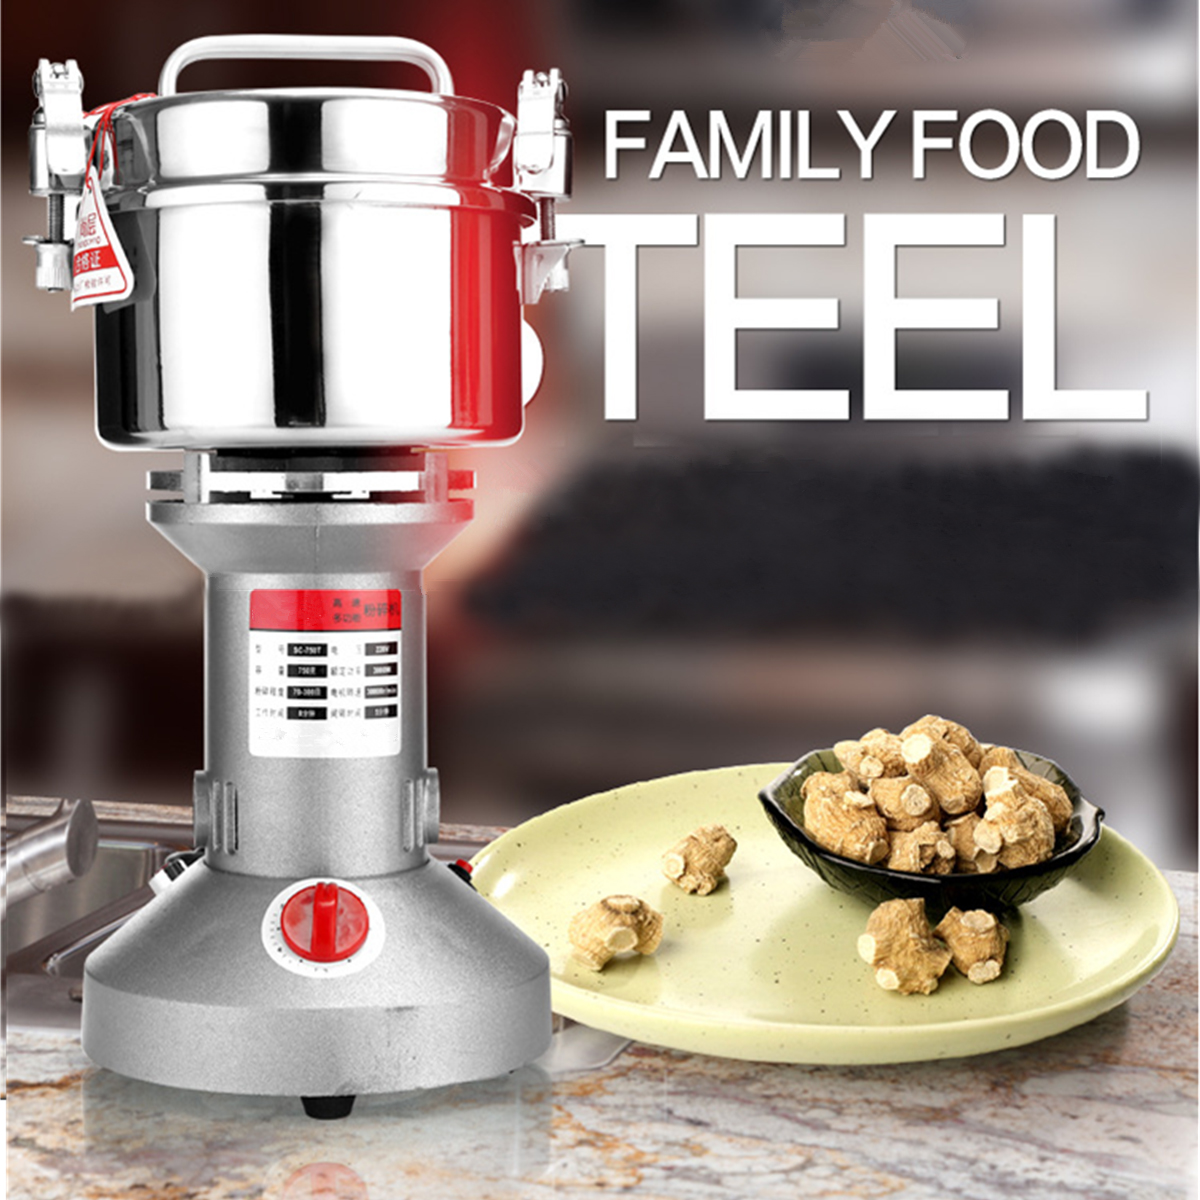 750G Stainless Steel High Speed Electric Herb Coffee Grain Grinder Grinding Cereal Mill Flour Powder Machine 3000W 220V